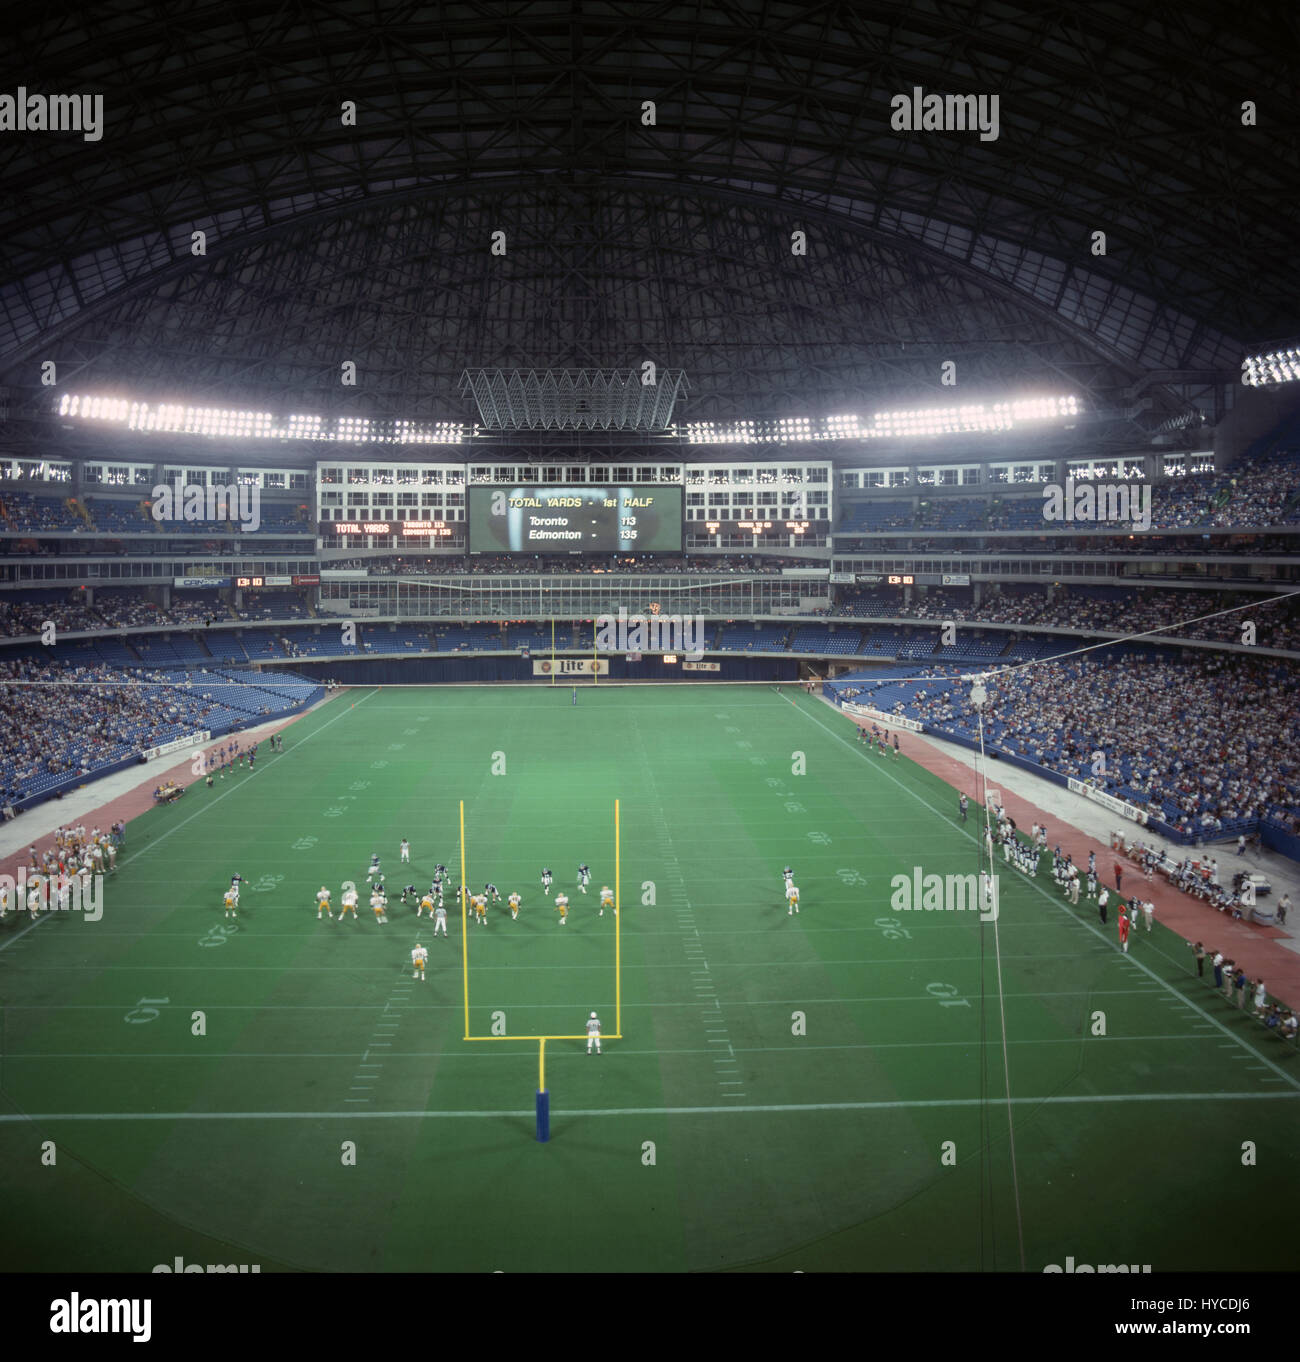 Toronto Skydome Canadian Football Rogers Centre, originally named SkyDome, is a multi-purpose stadium in downtown - Stock Image